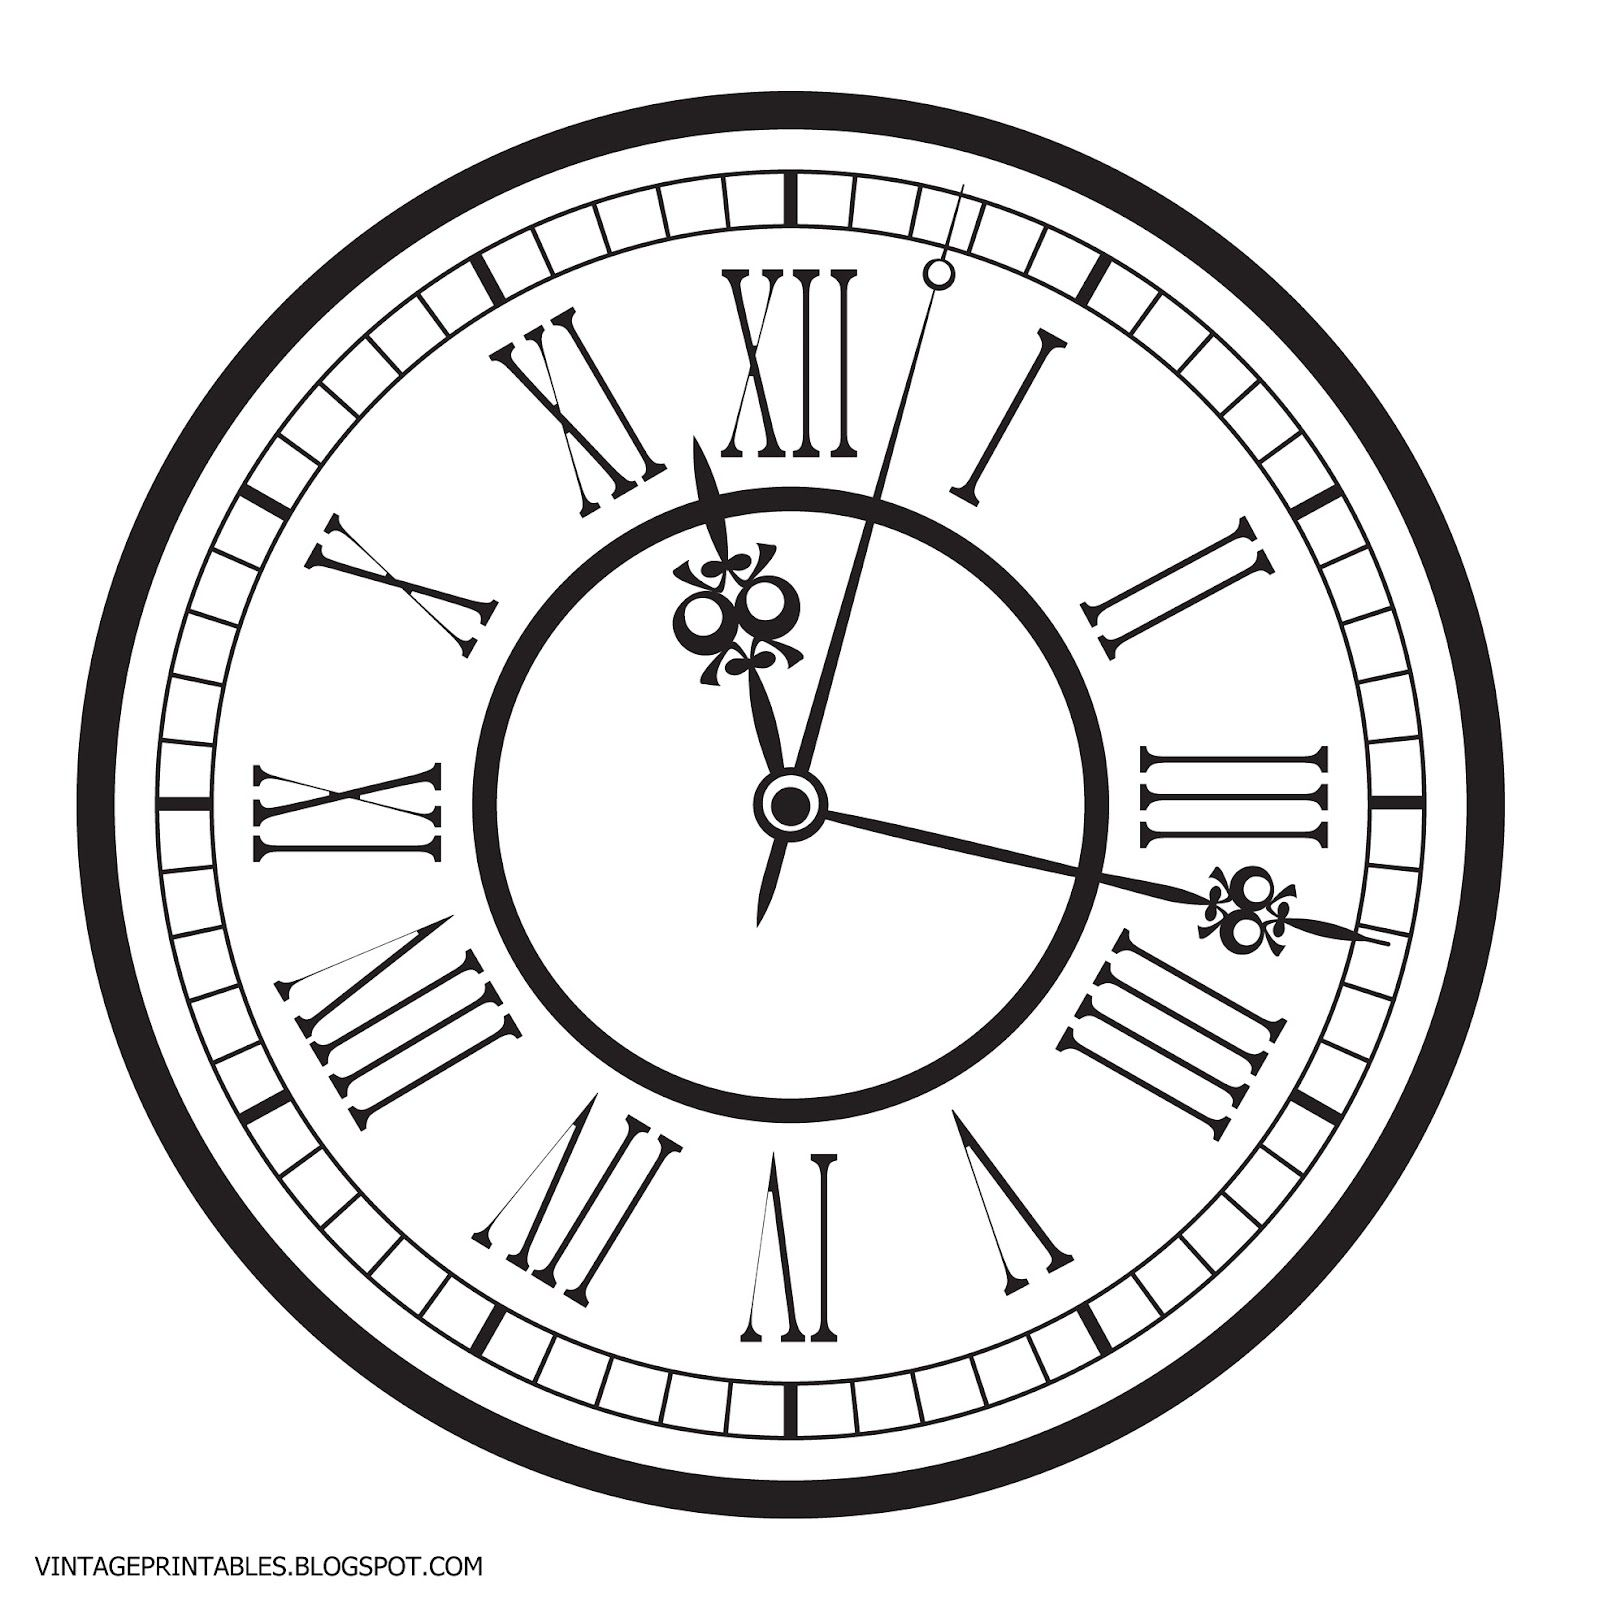 Free vintage clip art. Clocks clipart old fashioned